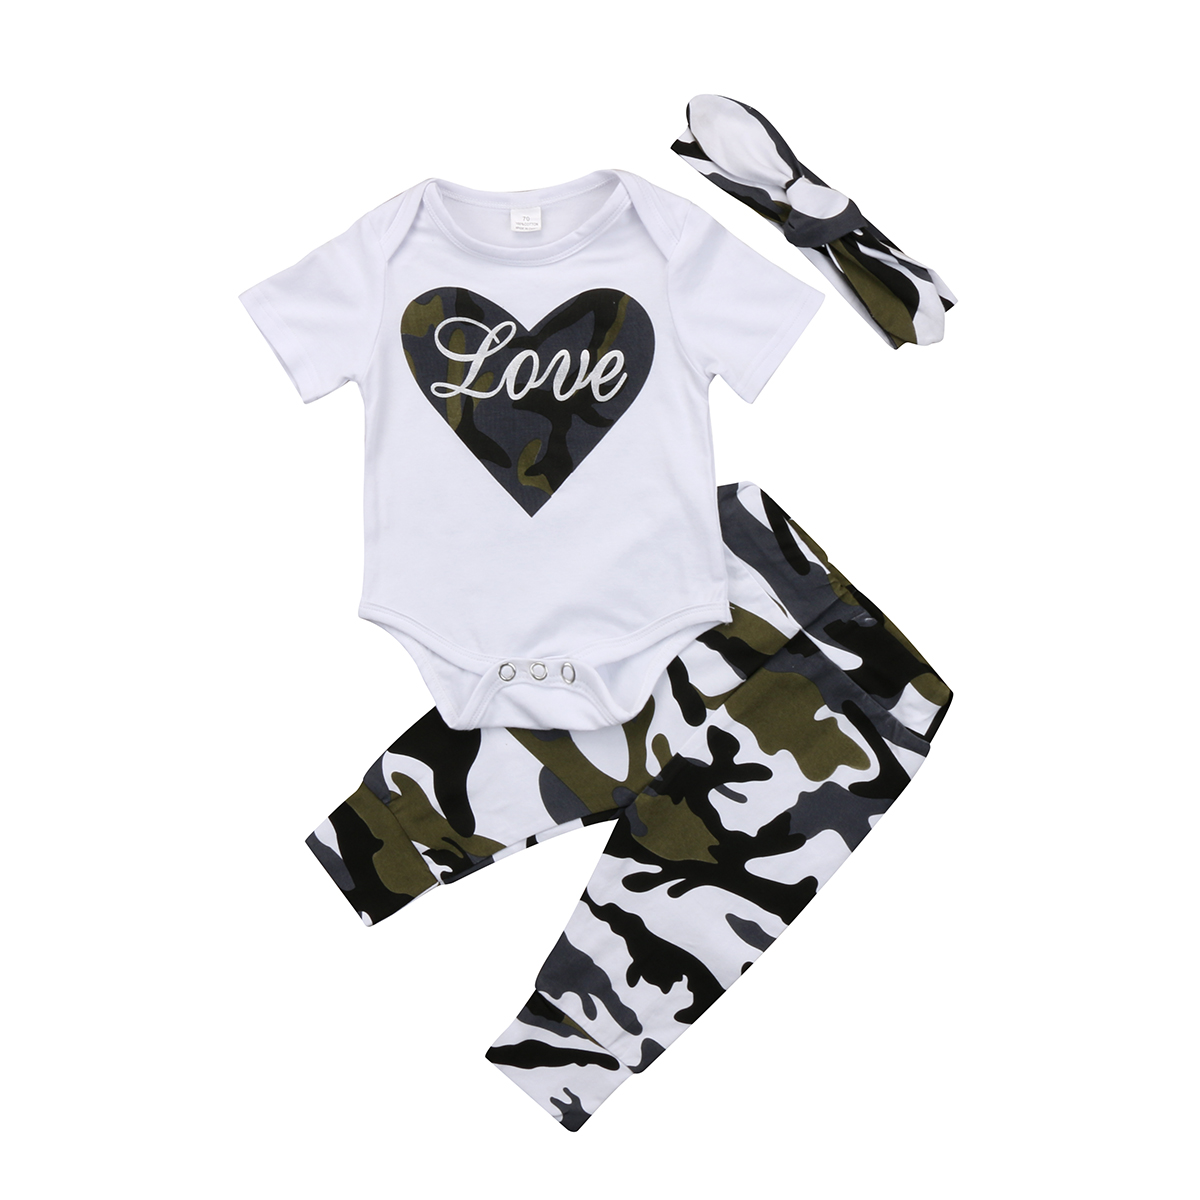 Newborn Baby Girls Clothing Set Cotton Tops Bodysuits Short Sleeve Camo Pants Headbands Cotton Casual Outfits Clothes Set